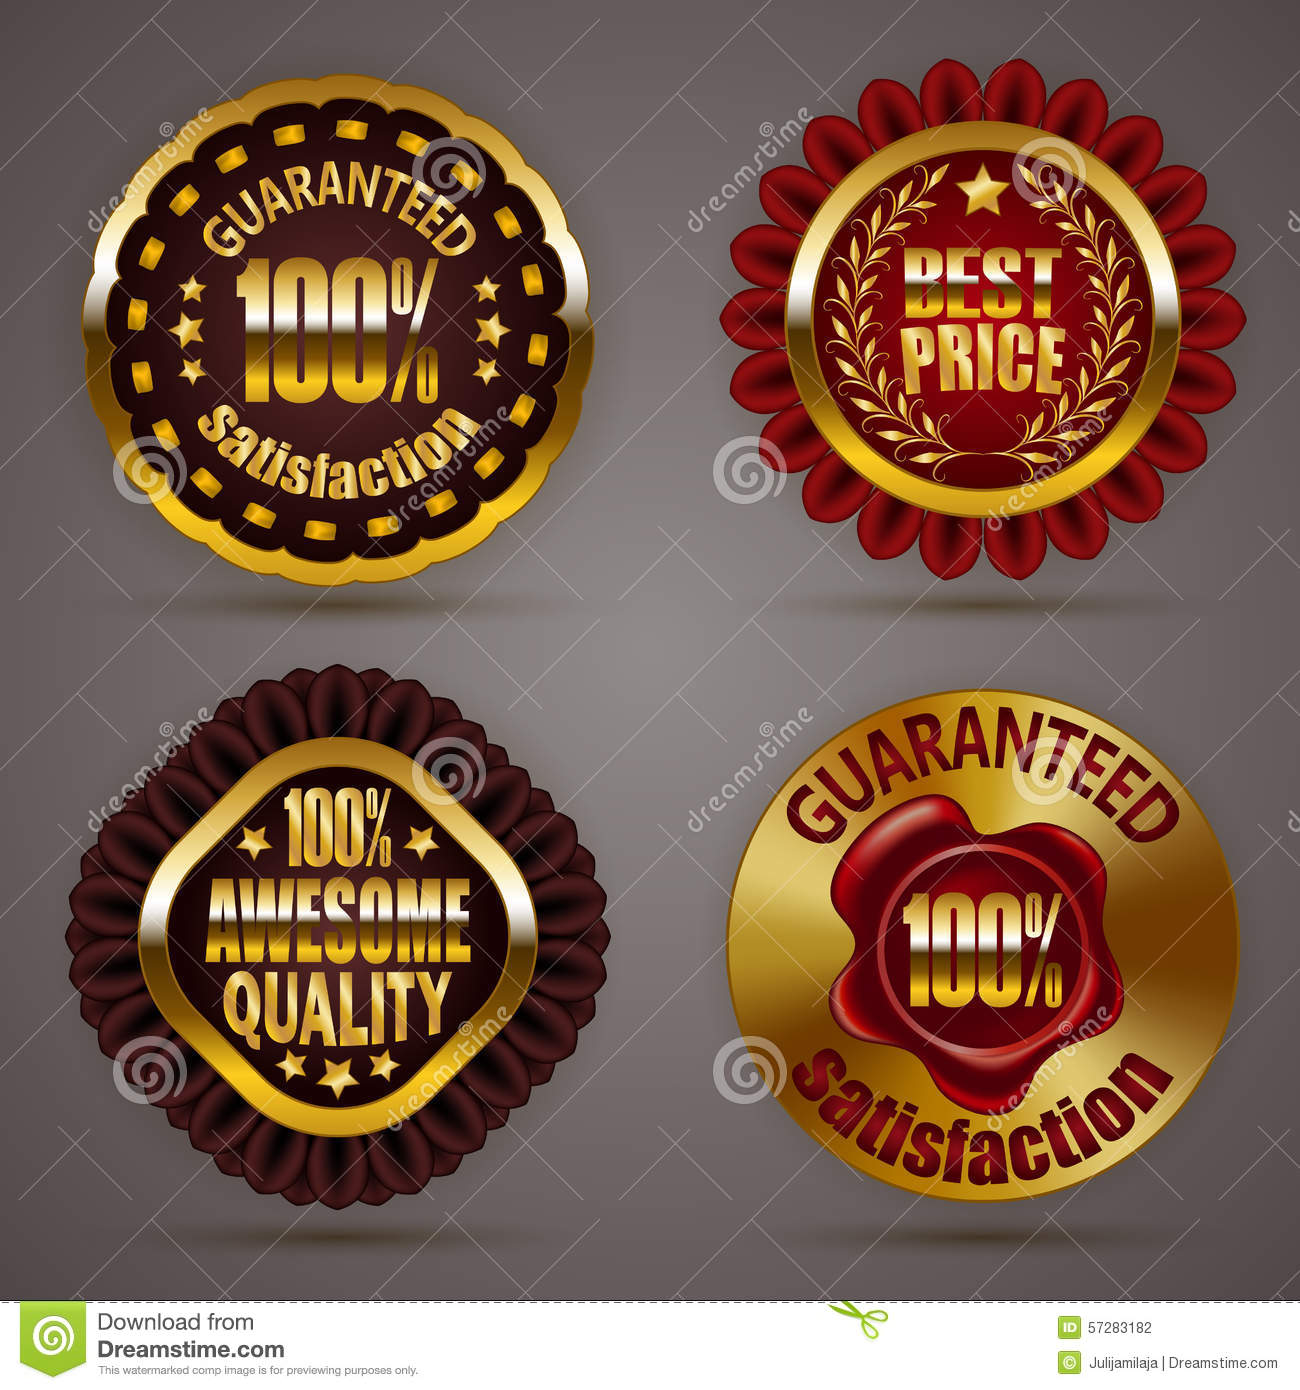 Set of luxury gold badges with stars laurel wreath wax seal 100 percent guaranteed awesome quality best price promotion emblems icons labels medal